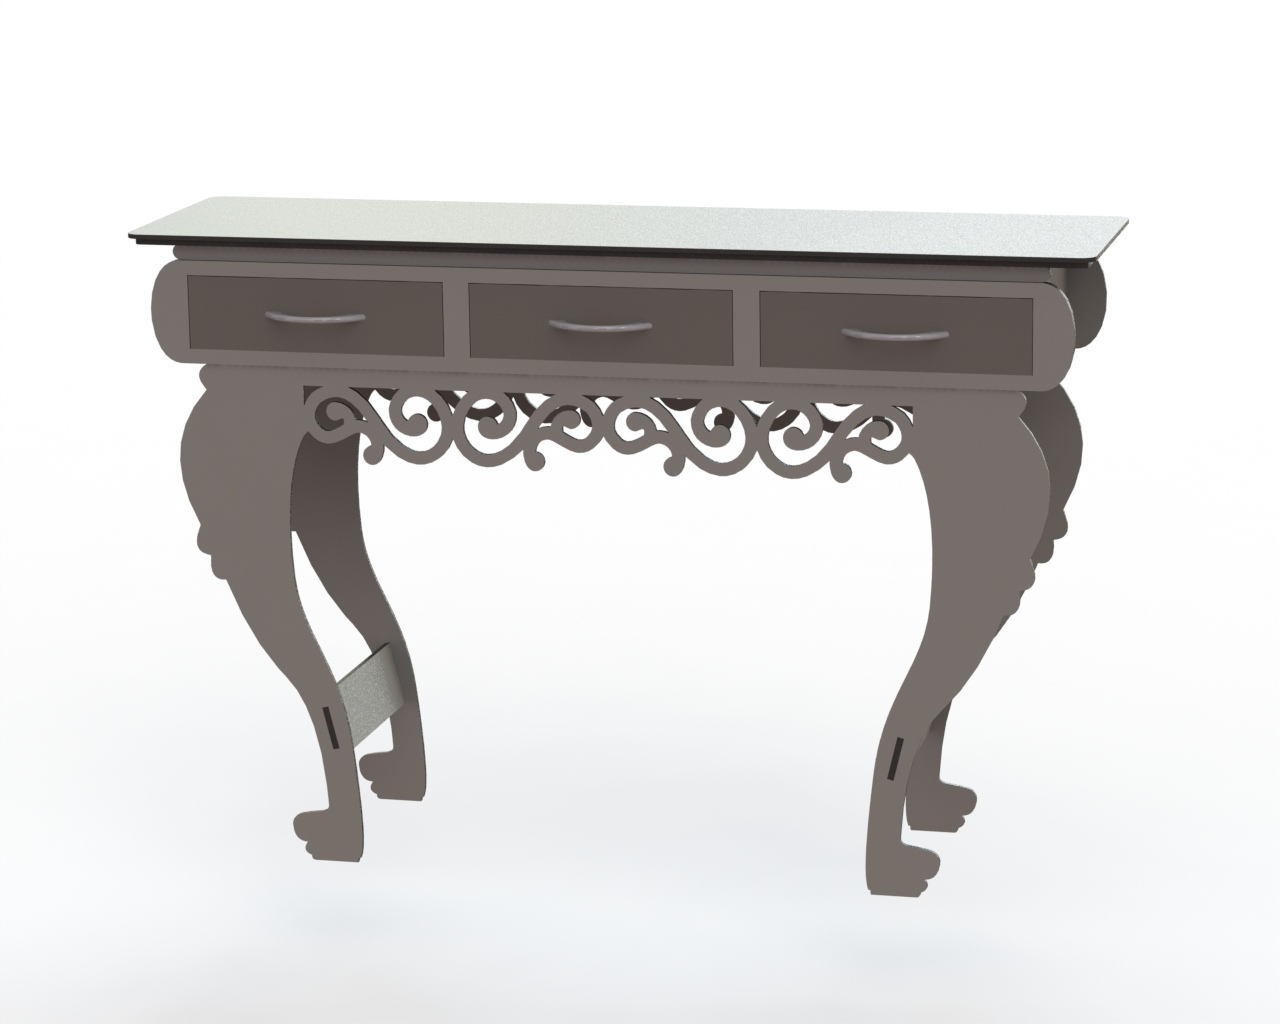 Laser Cut Table with Drawers Free Vector